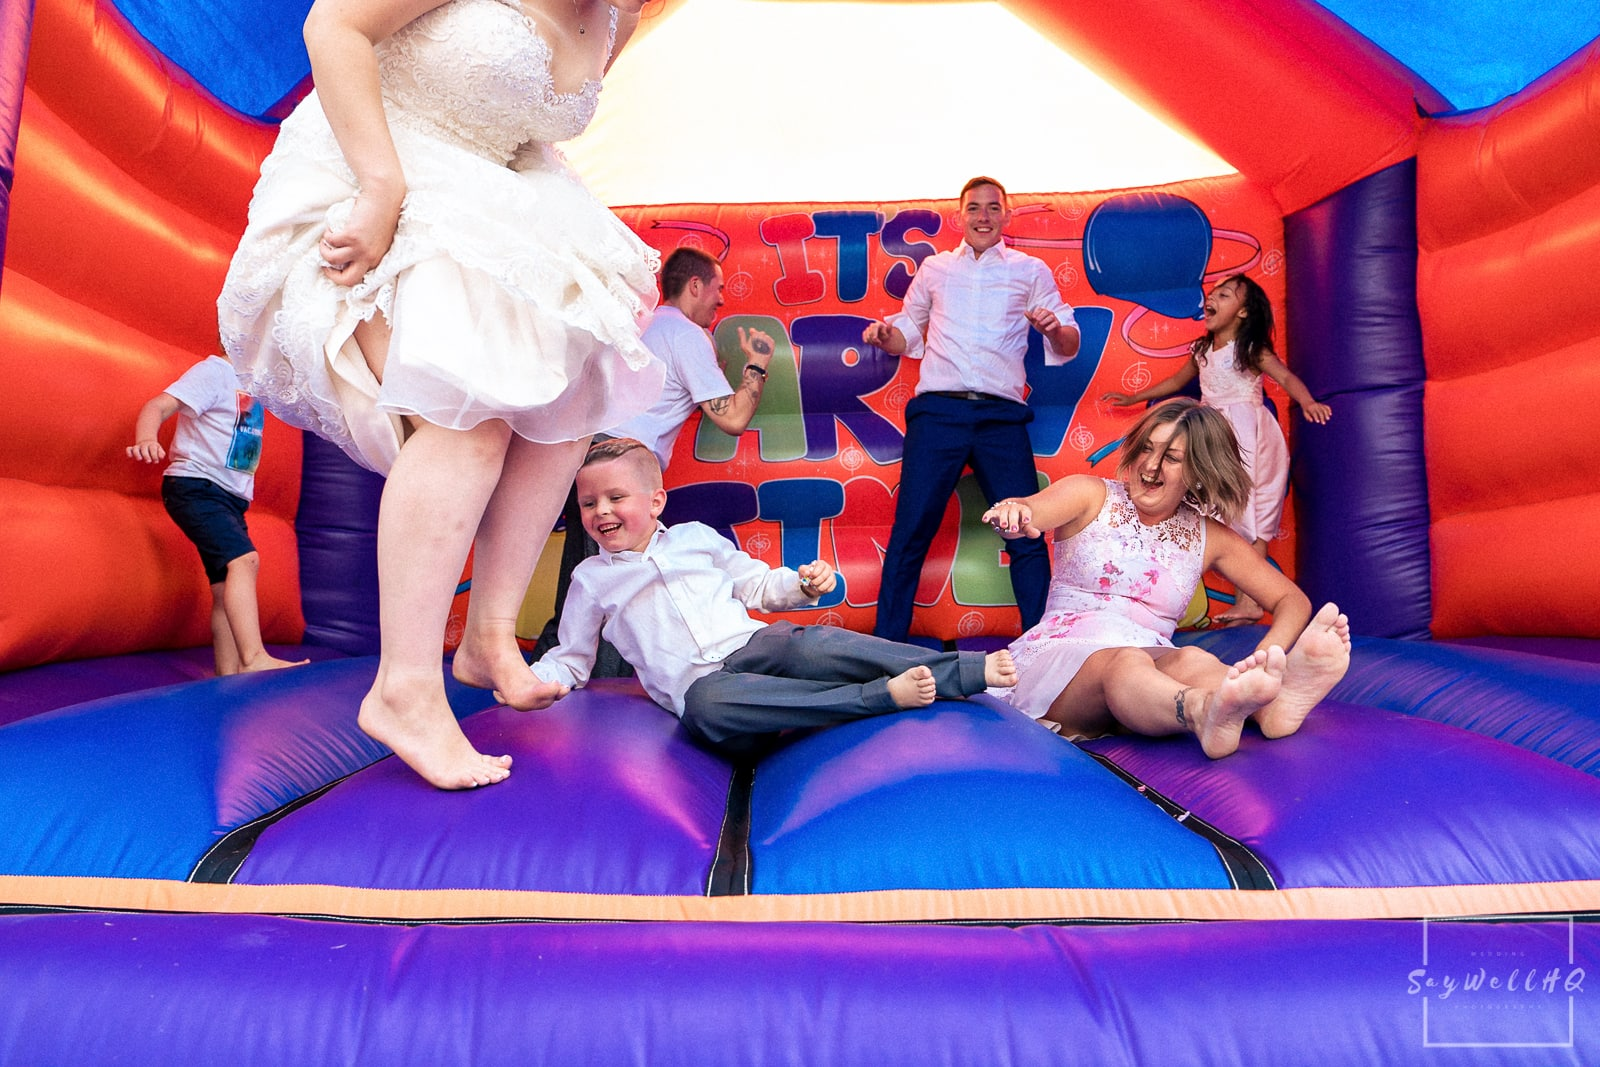 Swancar Farm Wedding Photography - Wedding bouncy castle at the wedding at Swancar Farm